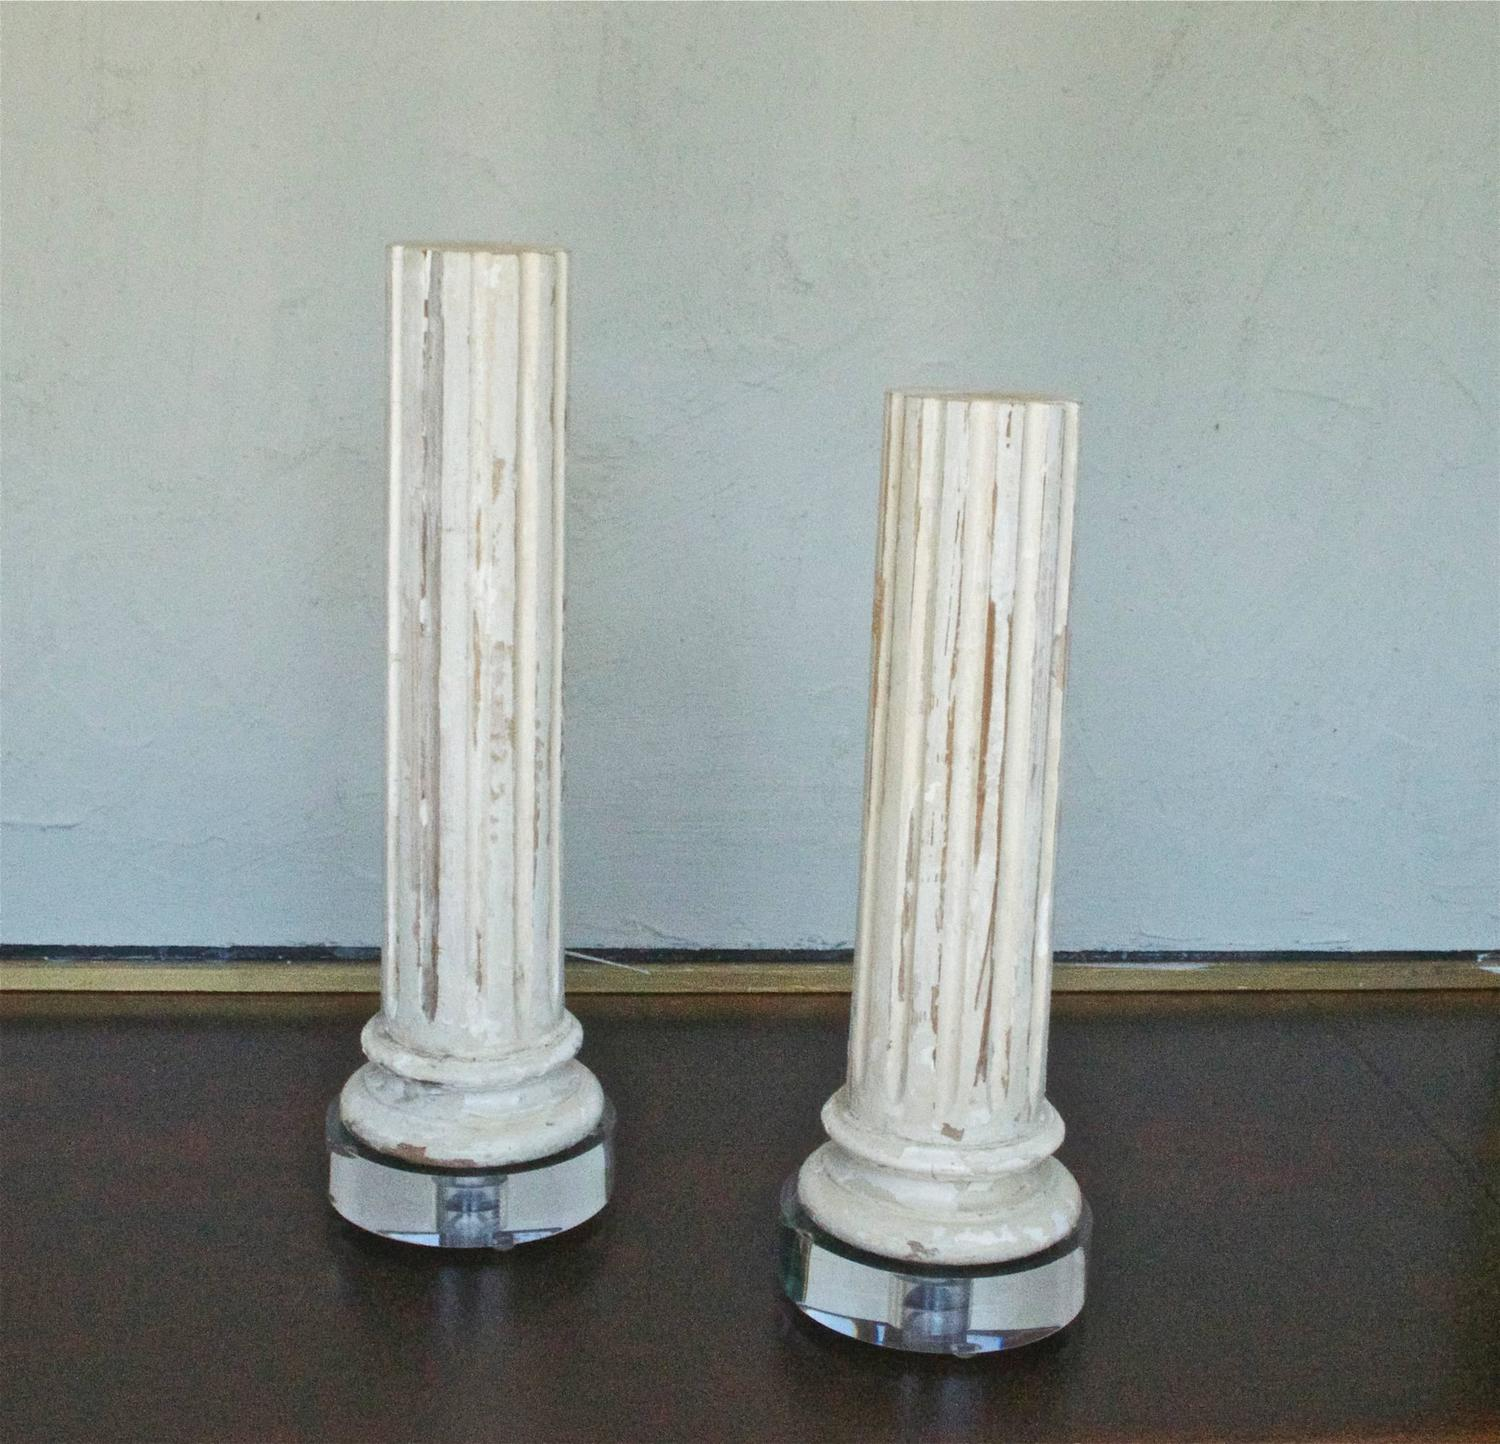 Stone Decorative Columns Sydkc 006 China Column Granite